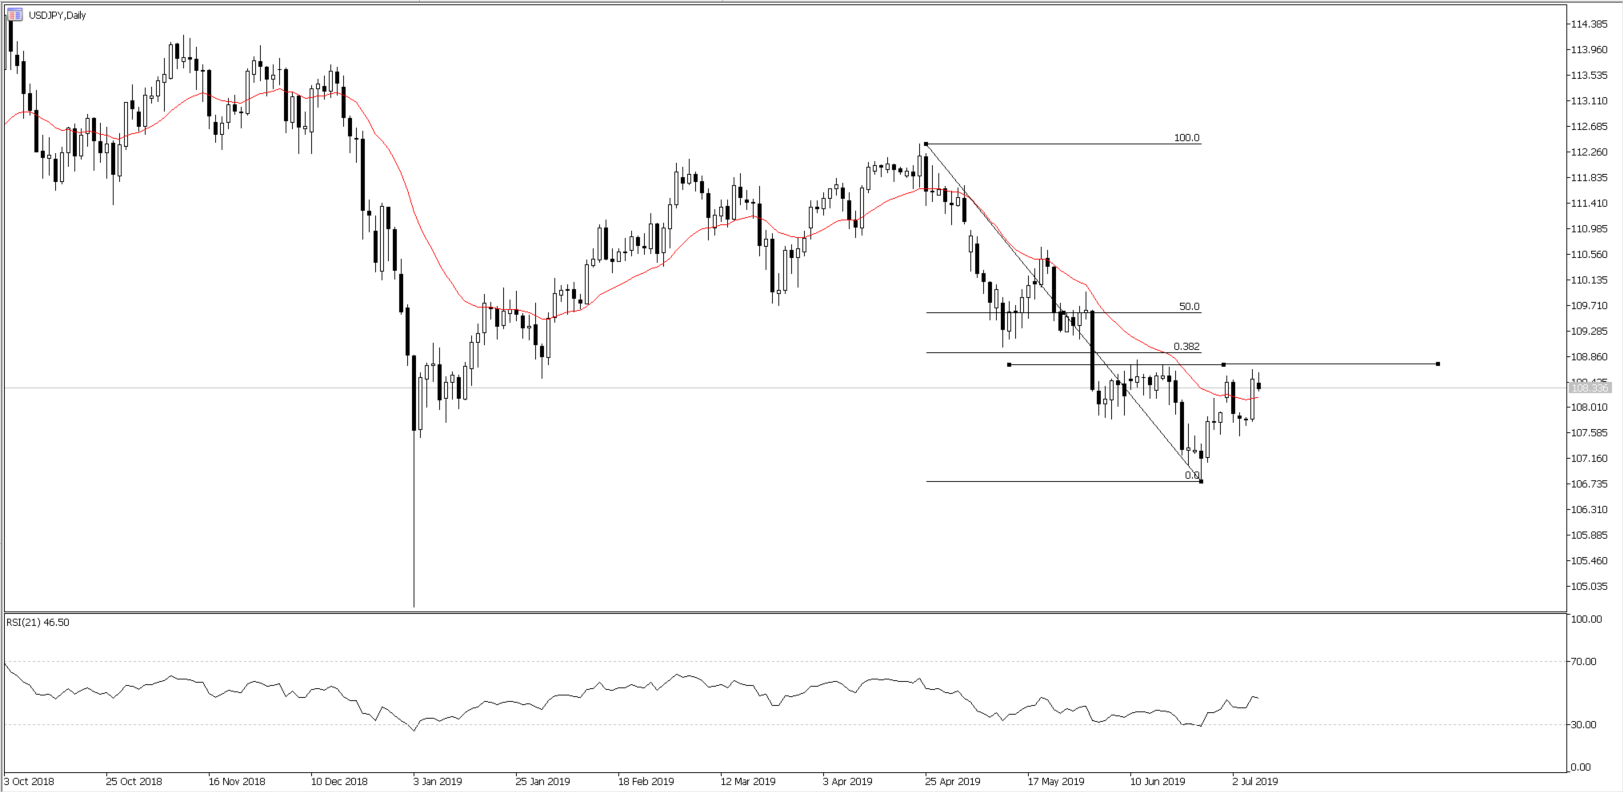 Chart of the Day - July 9, 2019 - USDJPY daily